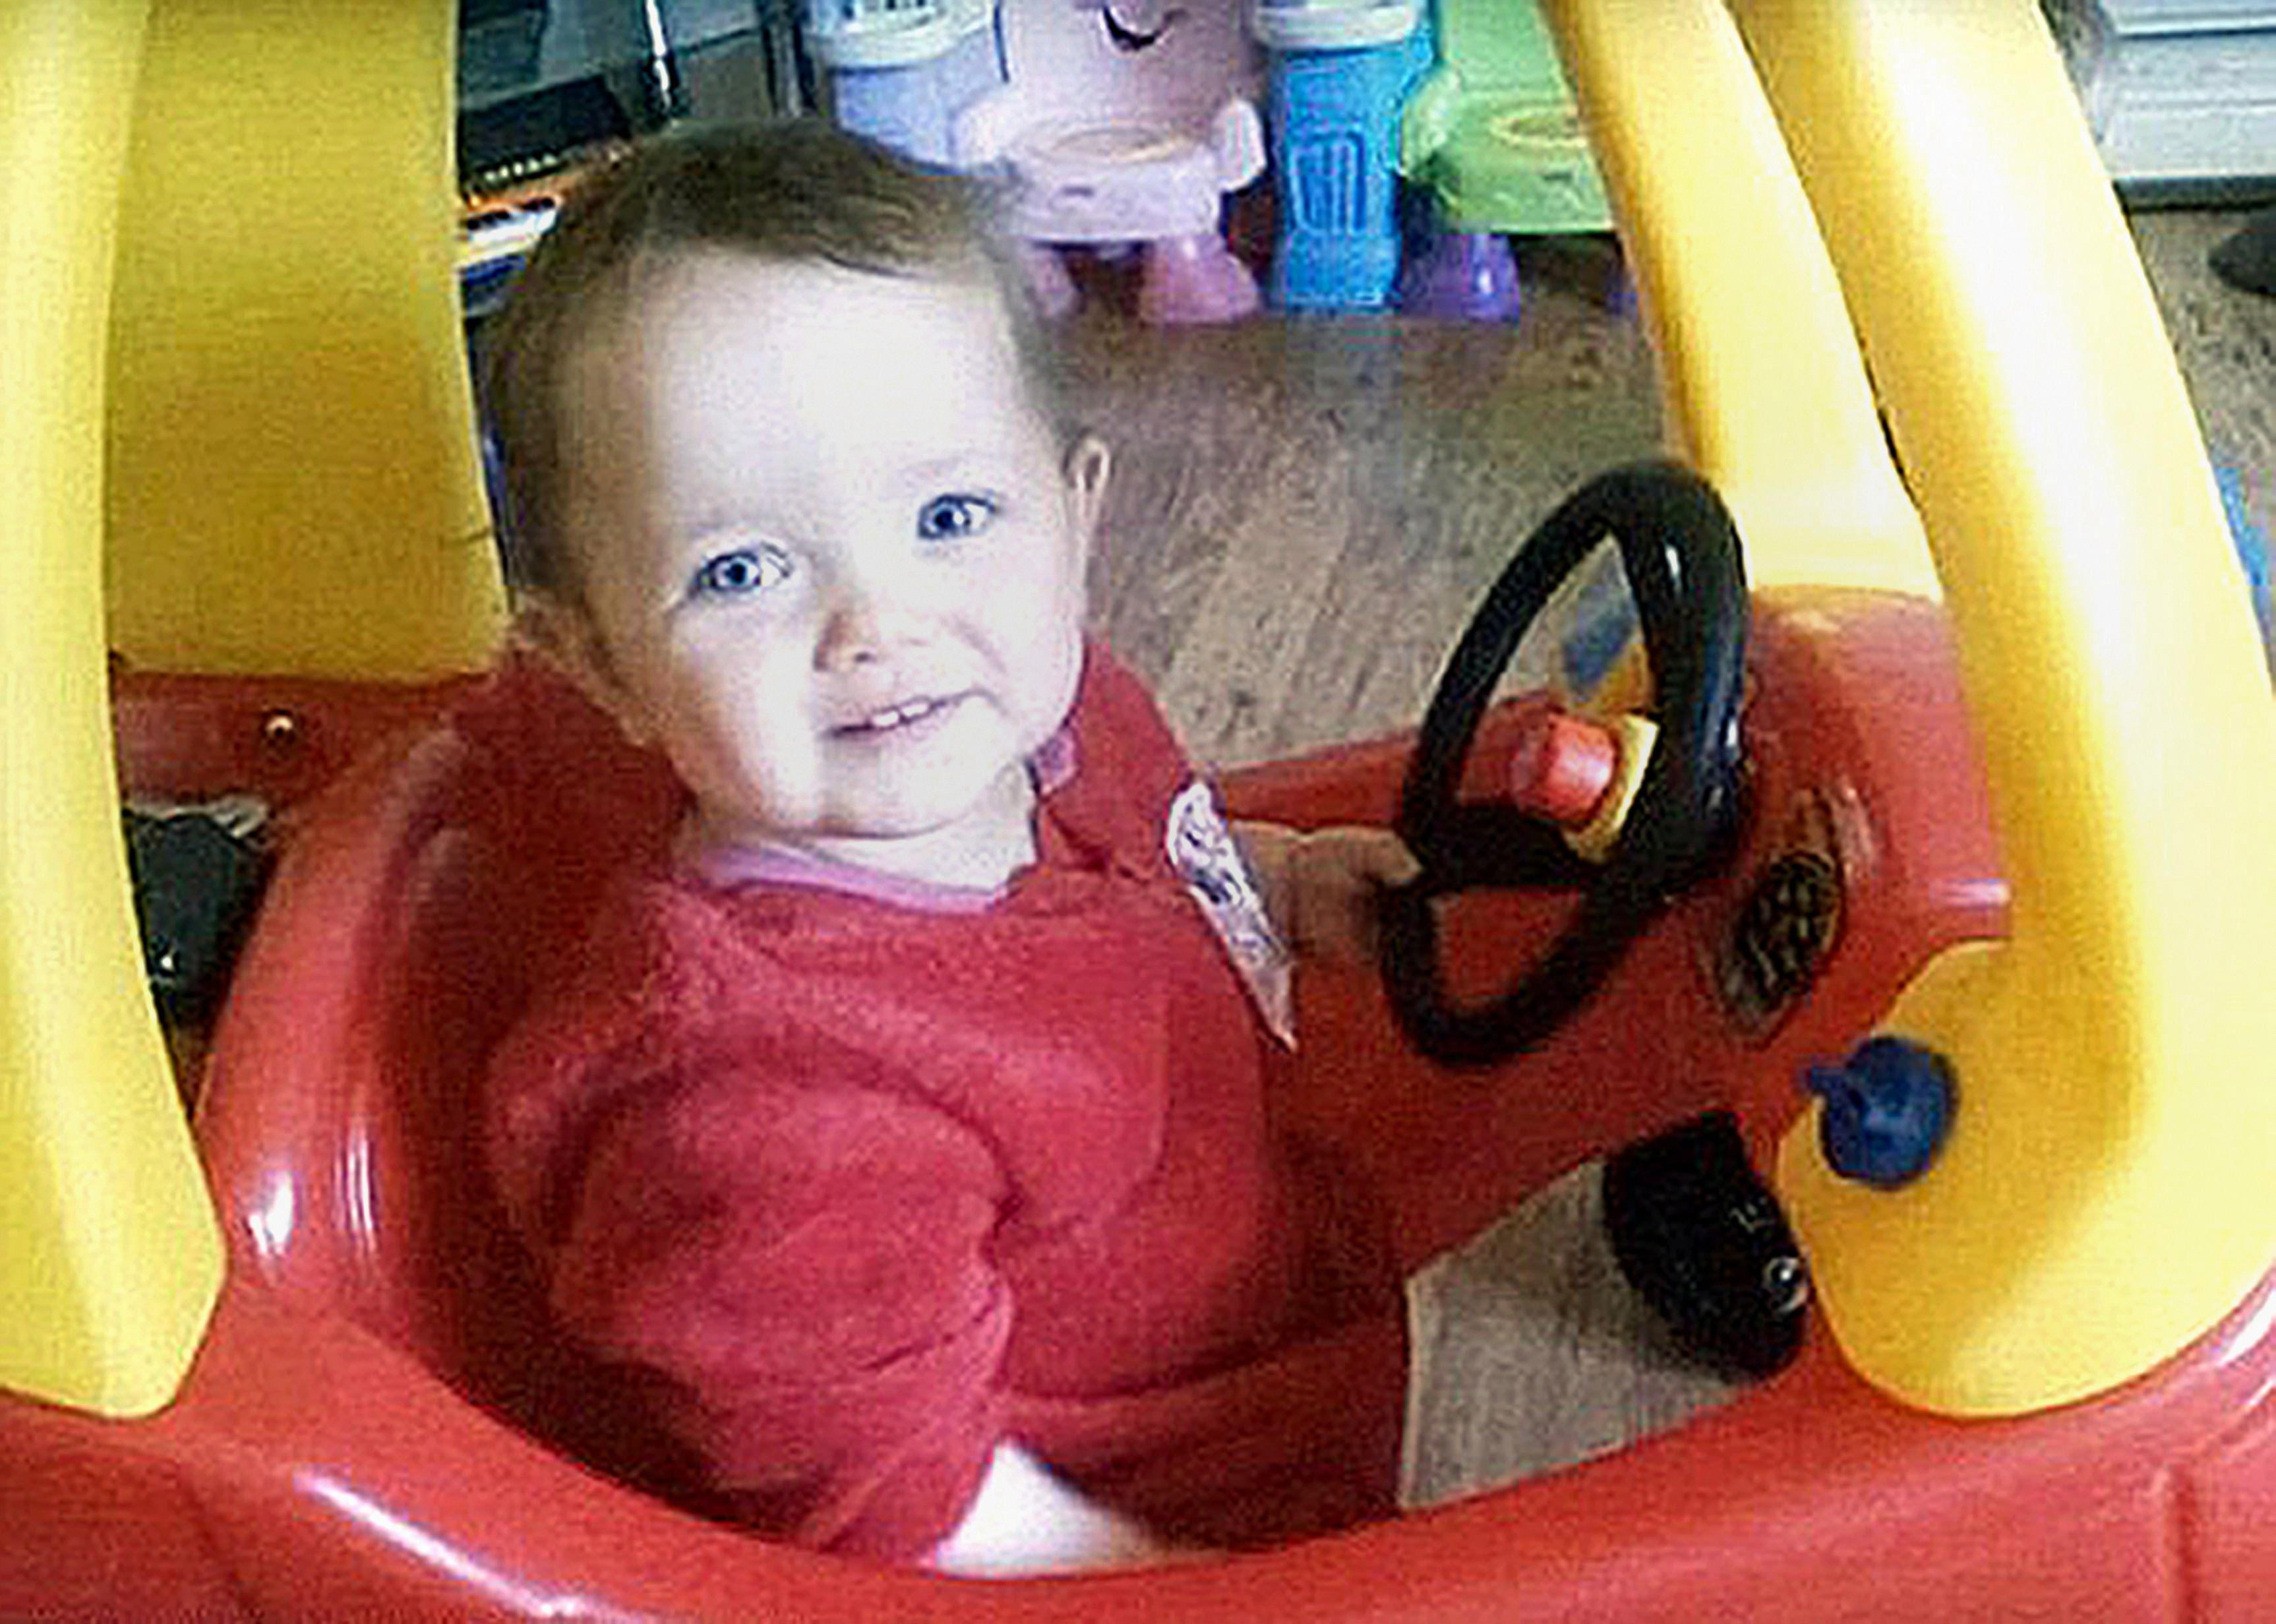 Hundreds sign petition to force Theresa May to launch inquiry into tragic Poppi Worthington death